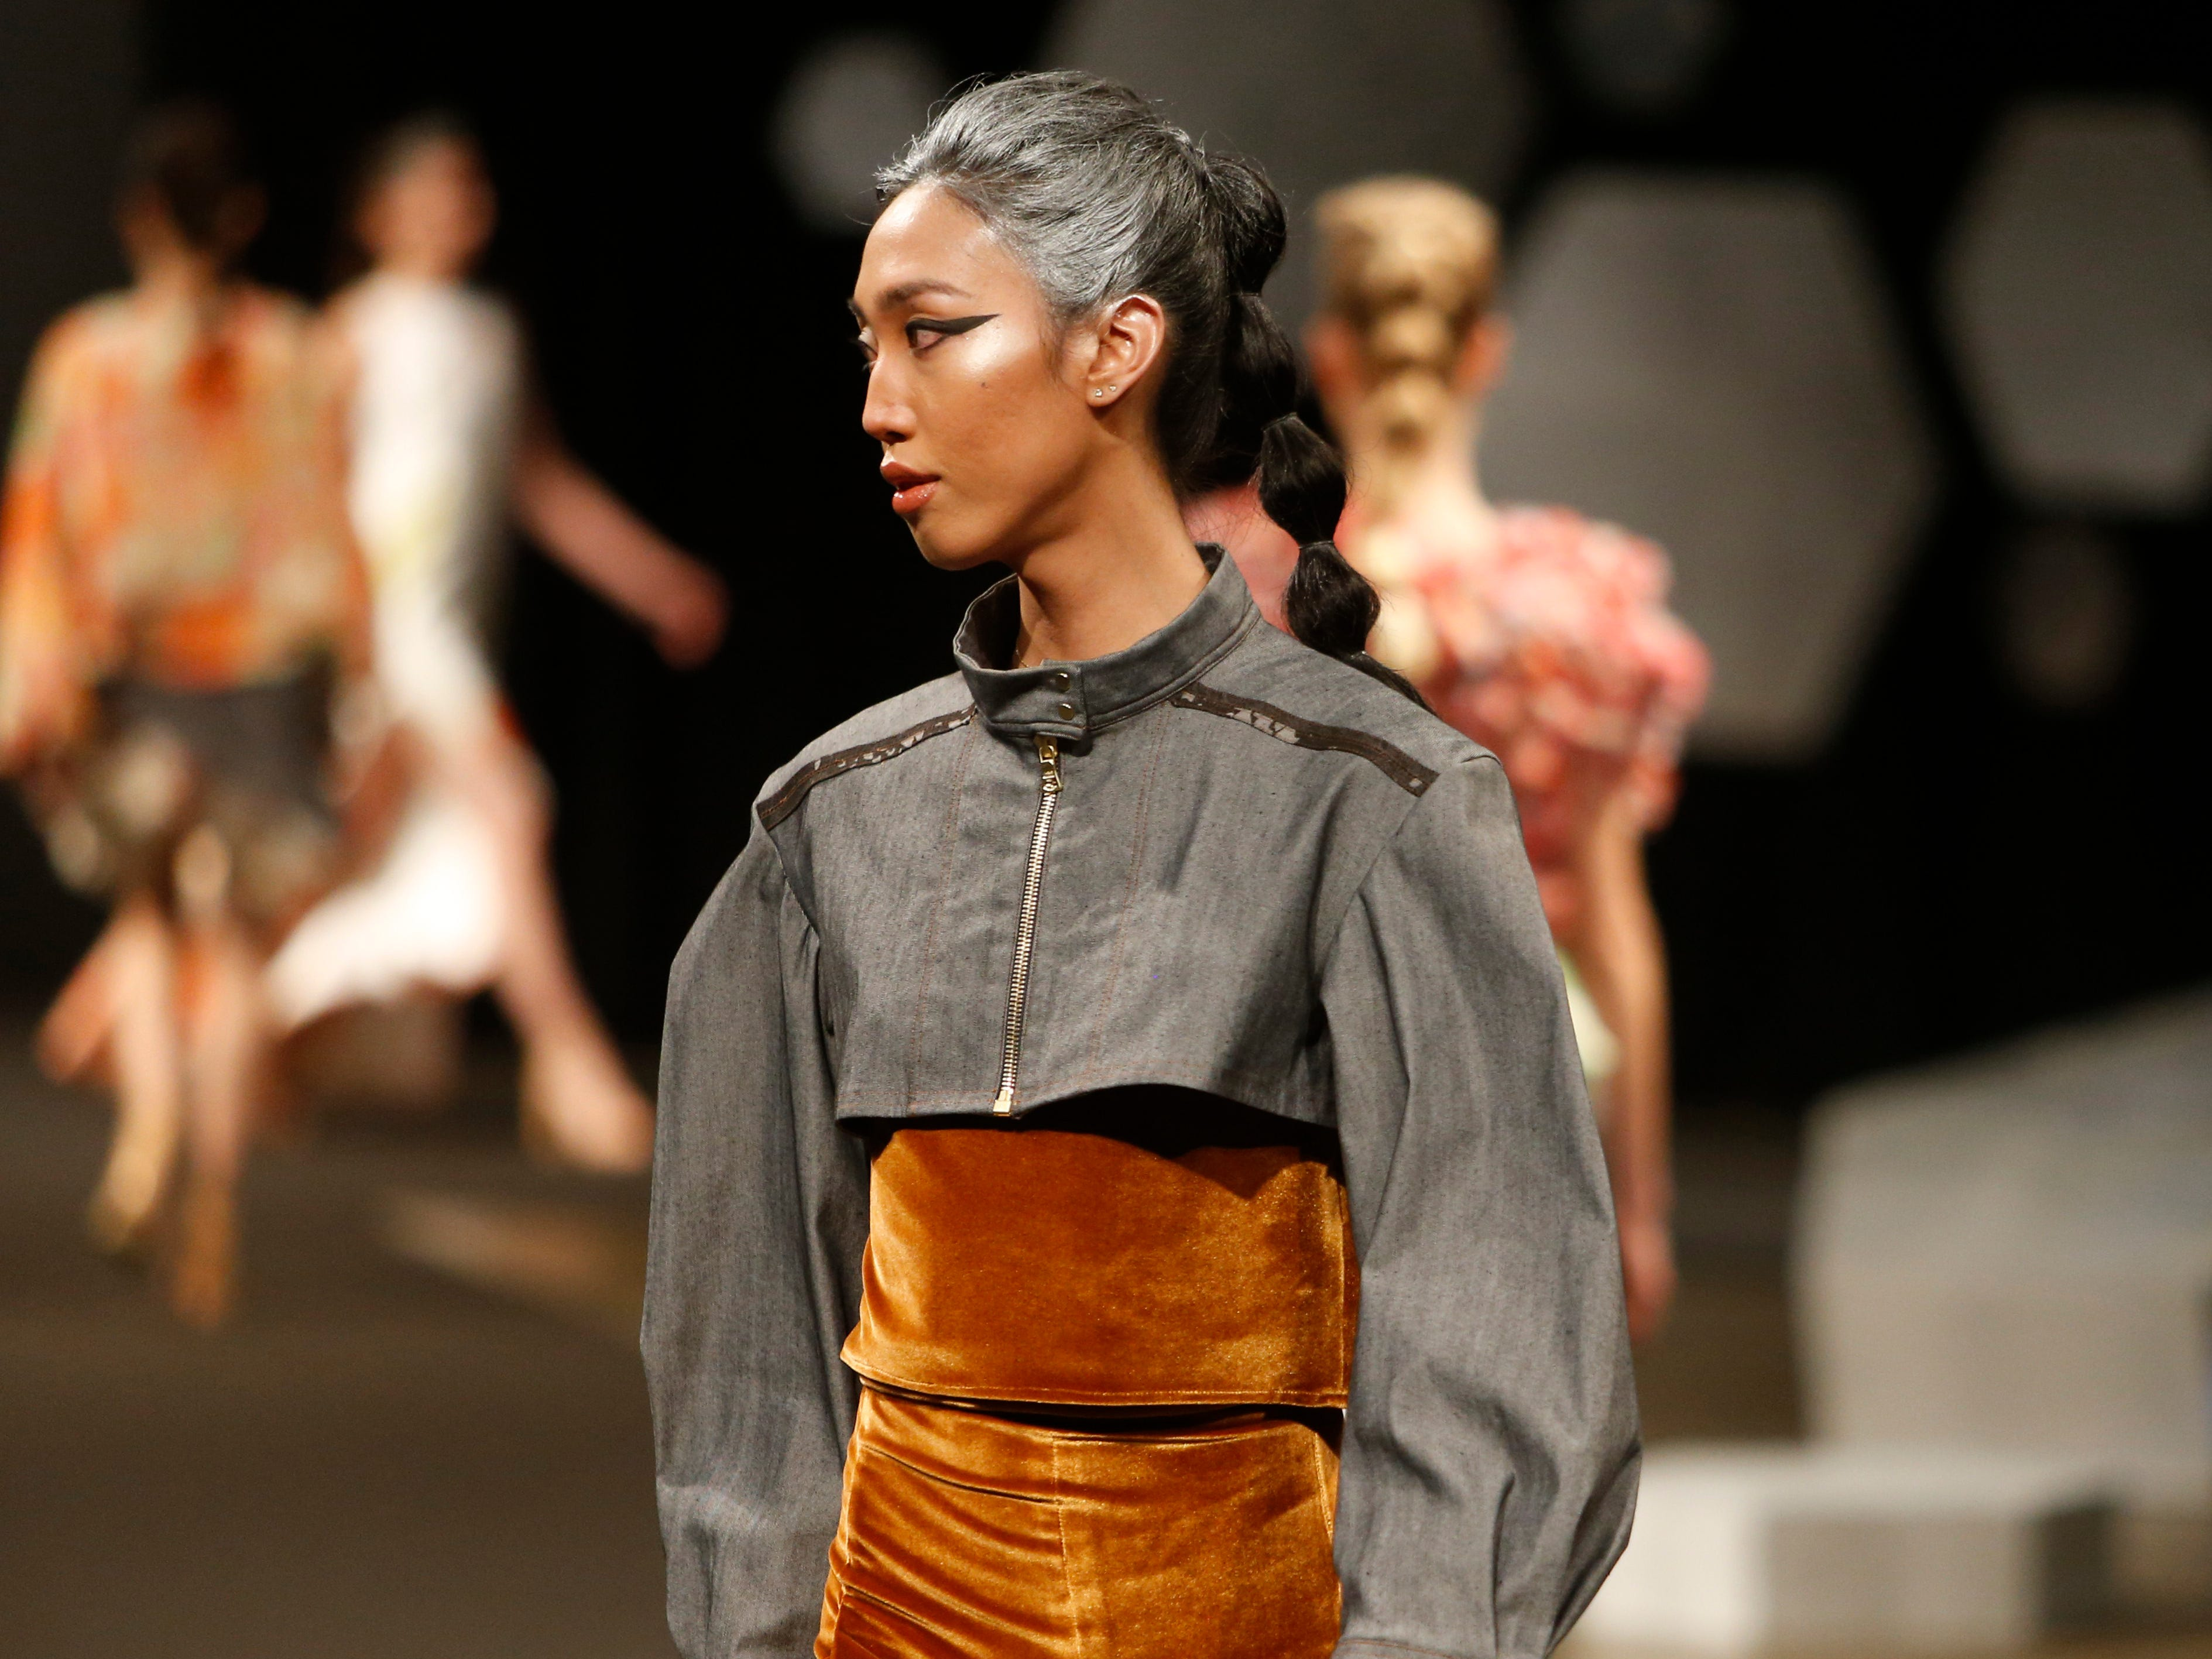 Designs from the collection of Marist College Fashion Department senior Joanna Musacchia during the 33rd Marist College Silver Needle Runway Show on May 10, 2019.